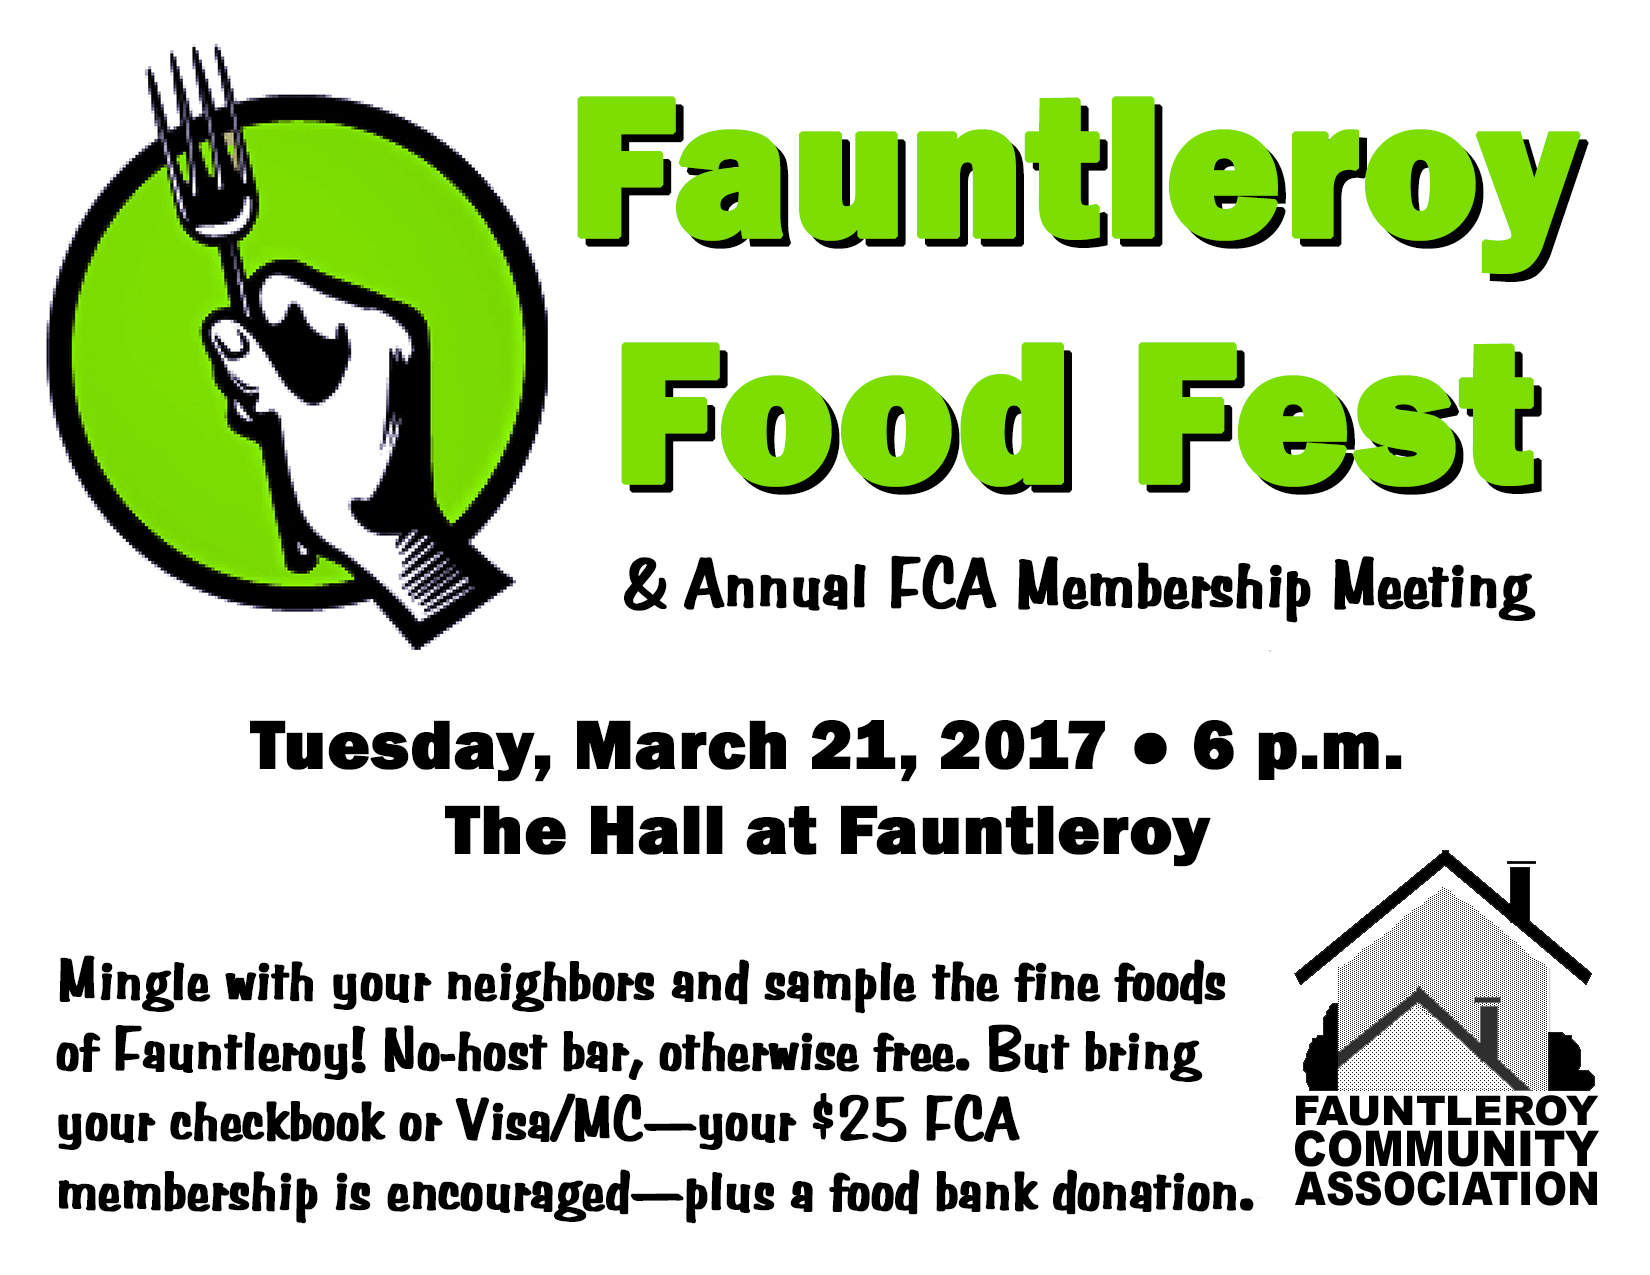 Fauntleroy Food Fest and Annual Fauntleroy Community Association Membership Meeting notice